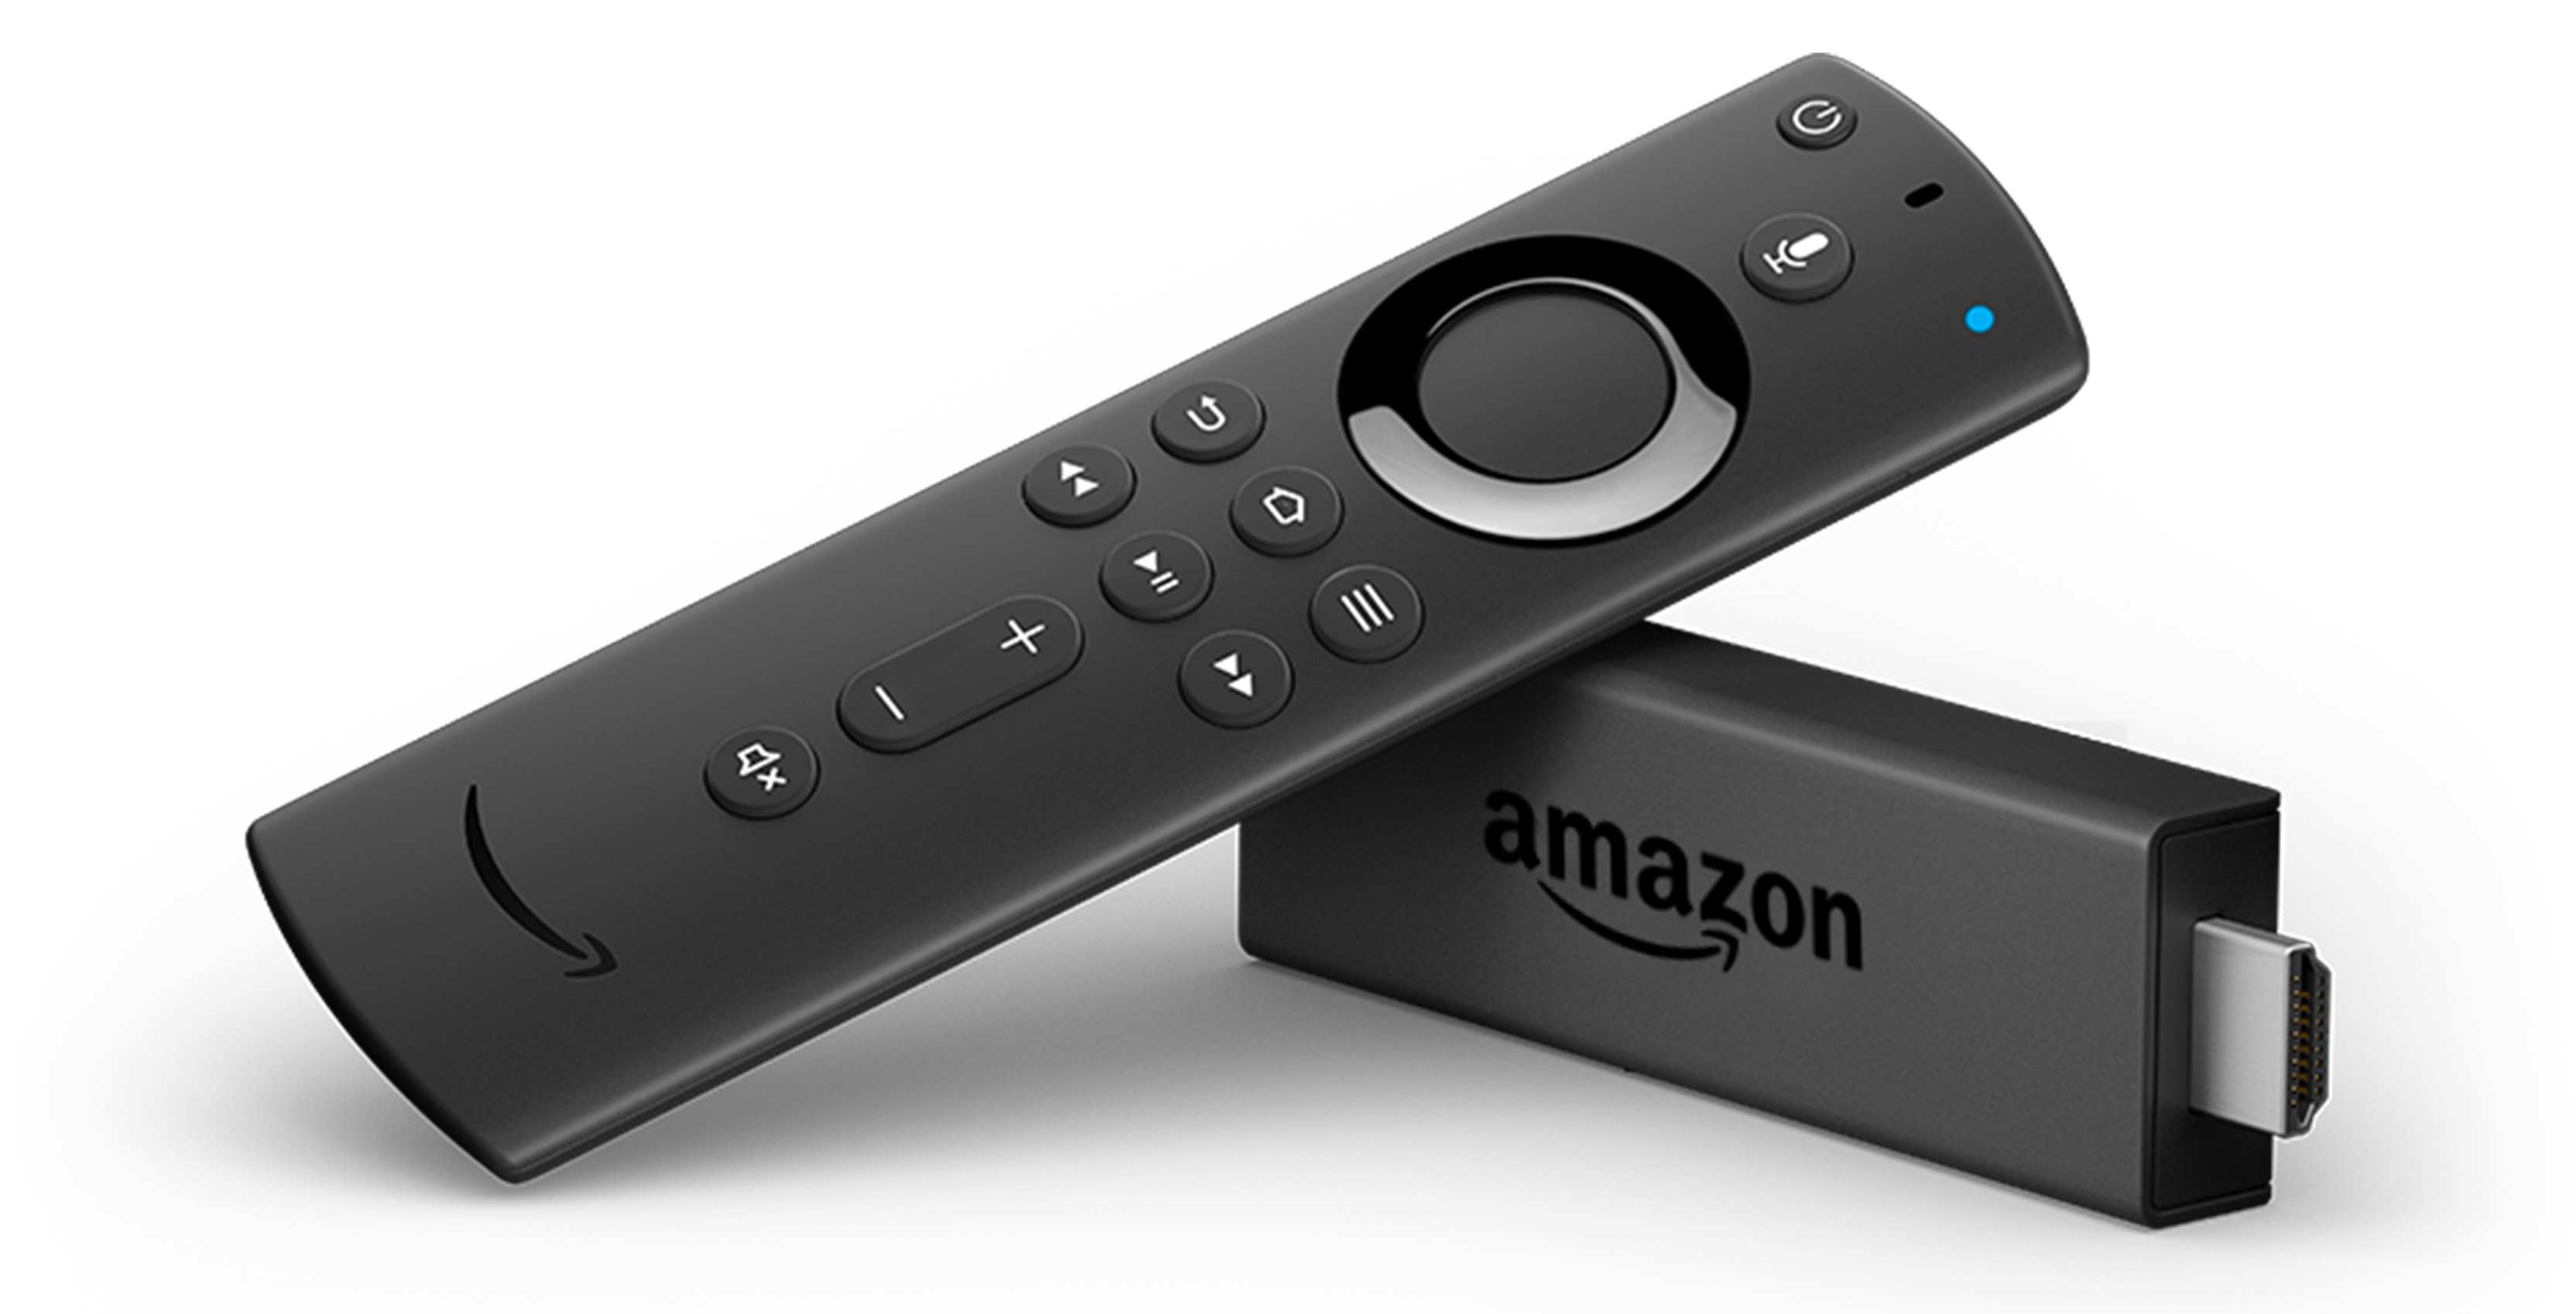 Fire TV Stick upgrade brings new Alexa Voice Remote with TV control